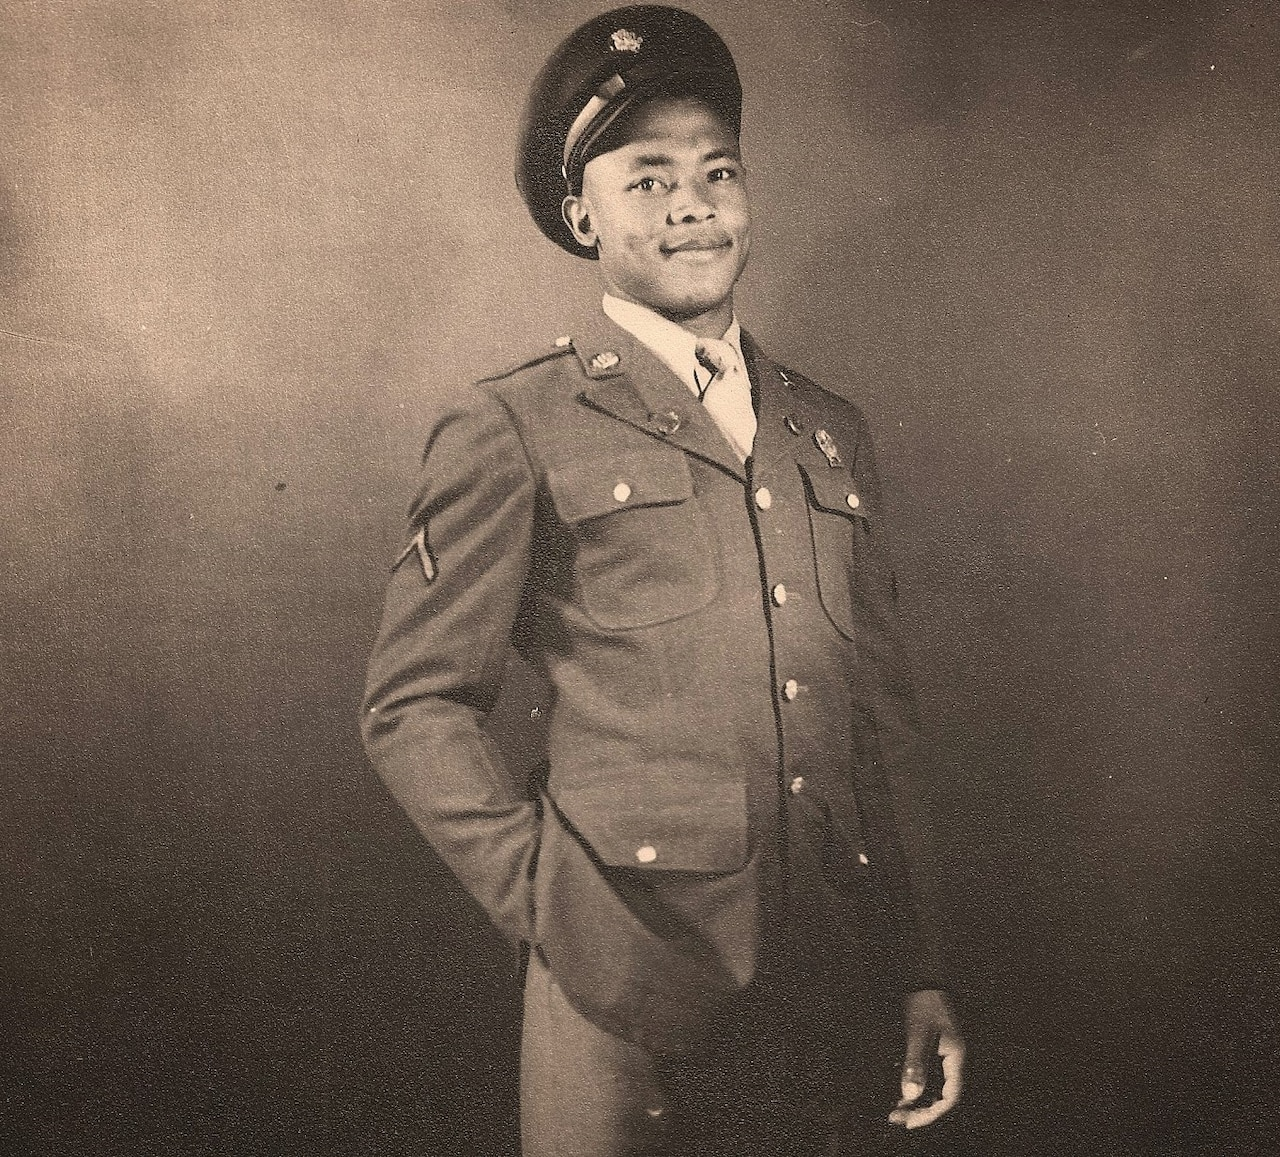 A man in a uniform and cap poses for a photo with one hand in his pocket.